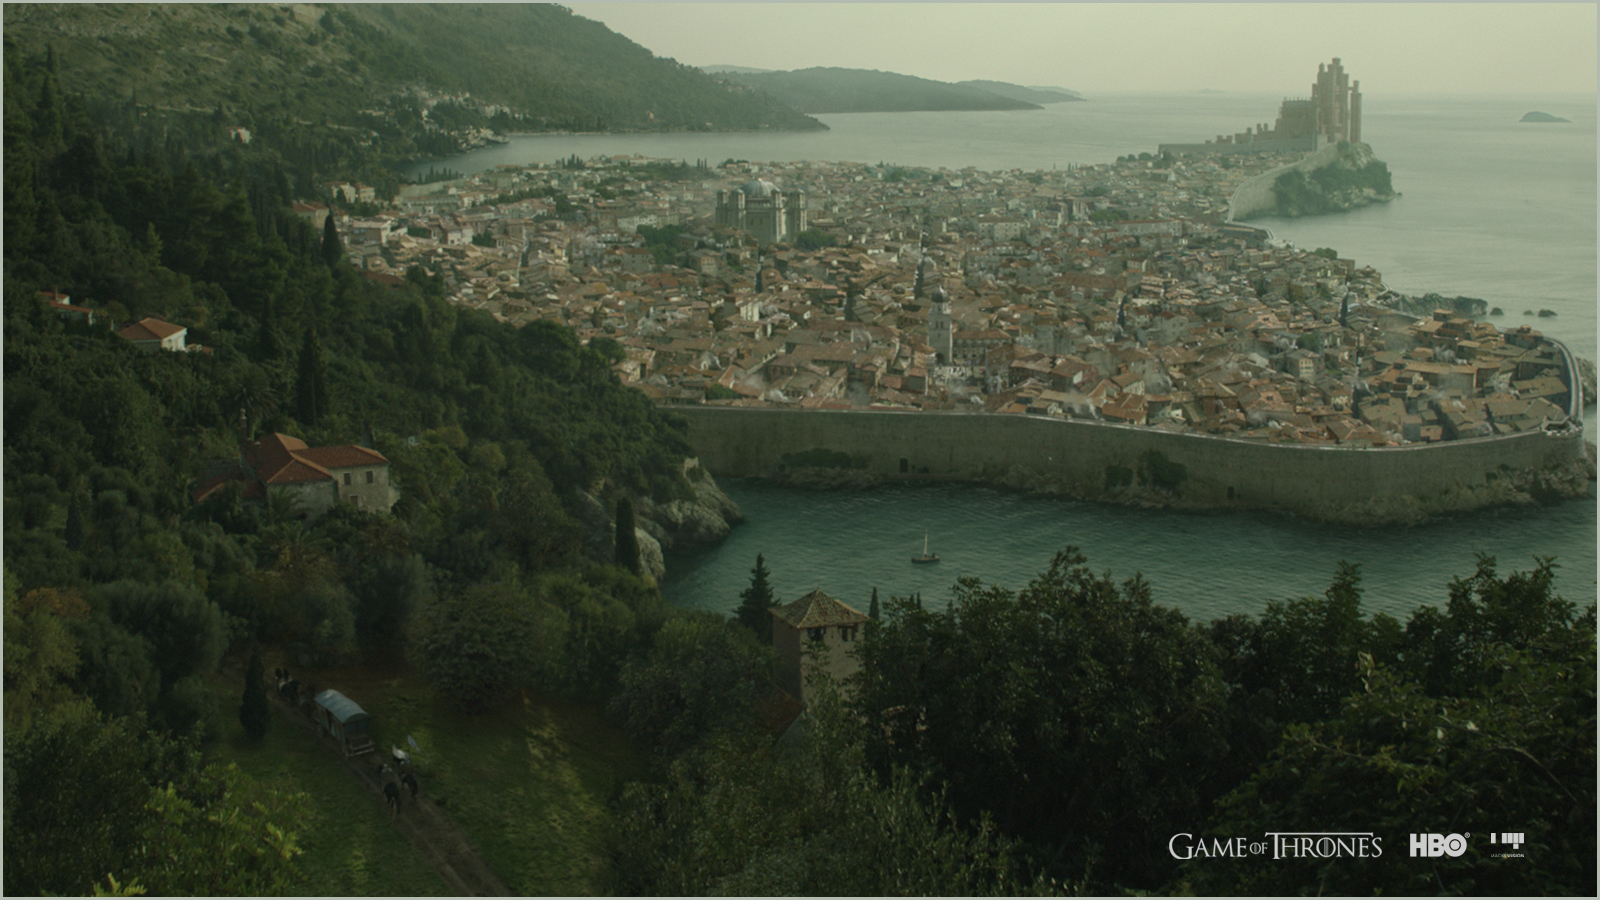 game of thornes map with Matte Painting on 3415490730 in addition Game Of Thrones Cersei Westeros Map Jim Stanes Hbo 1201860936 as well 9495688283 together with Reach as well File Tollymore Forest Park  September 2010  10.